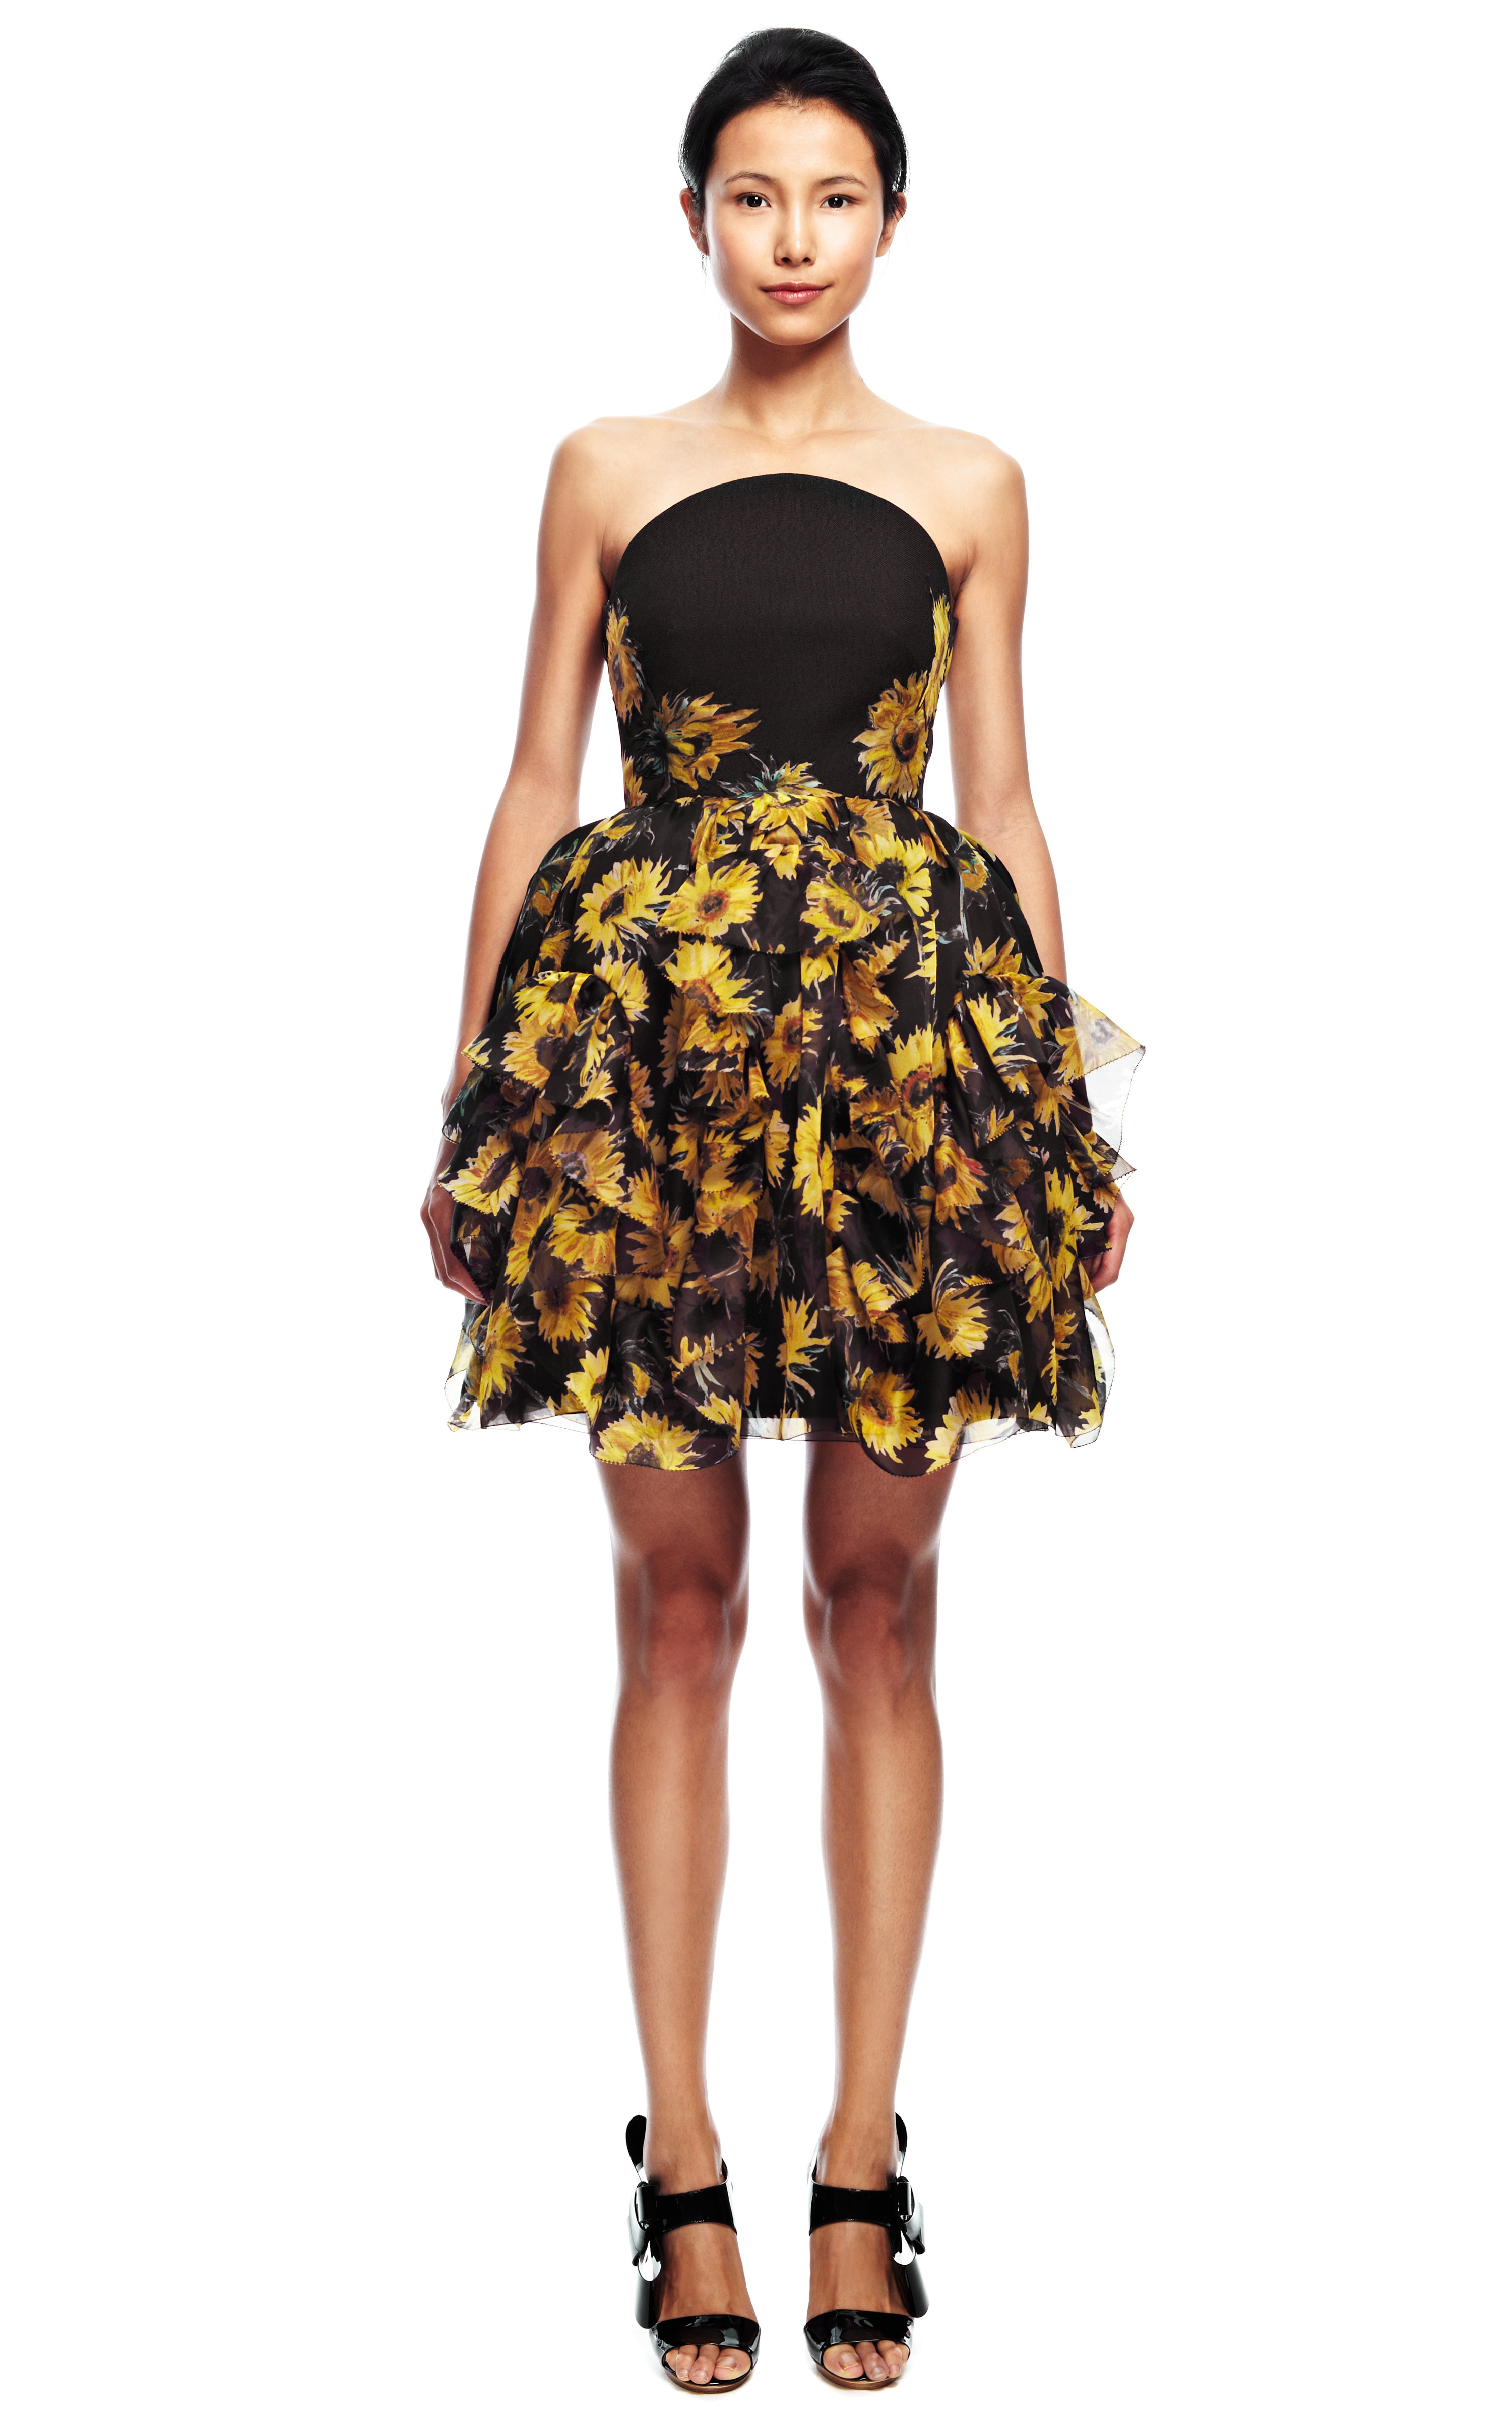 Sunflower Dress Picture Collection Dressedupgirl Com